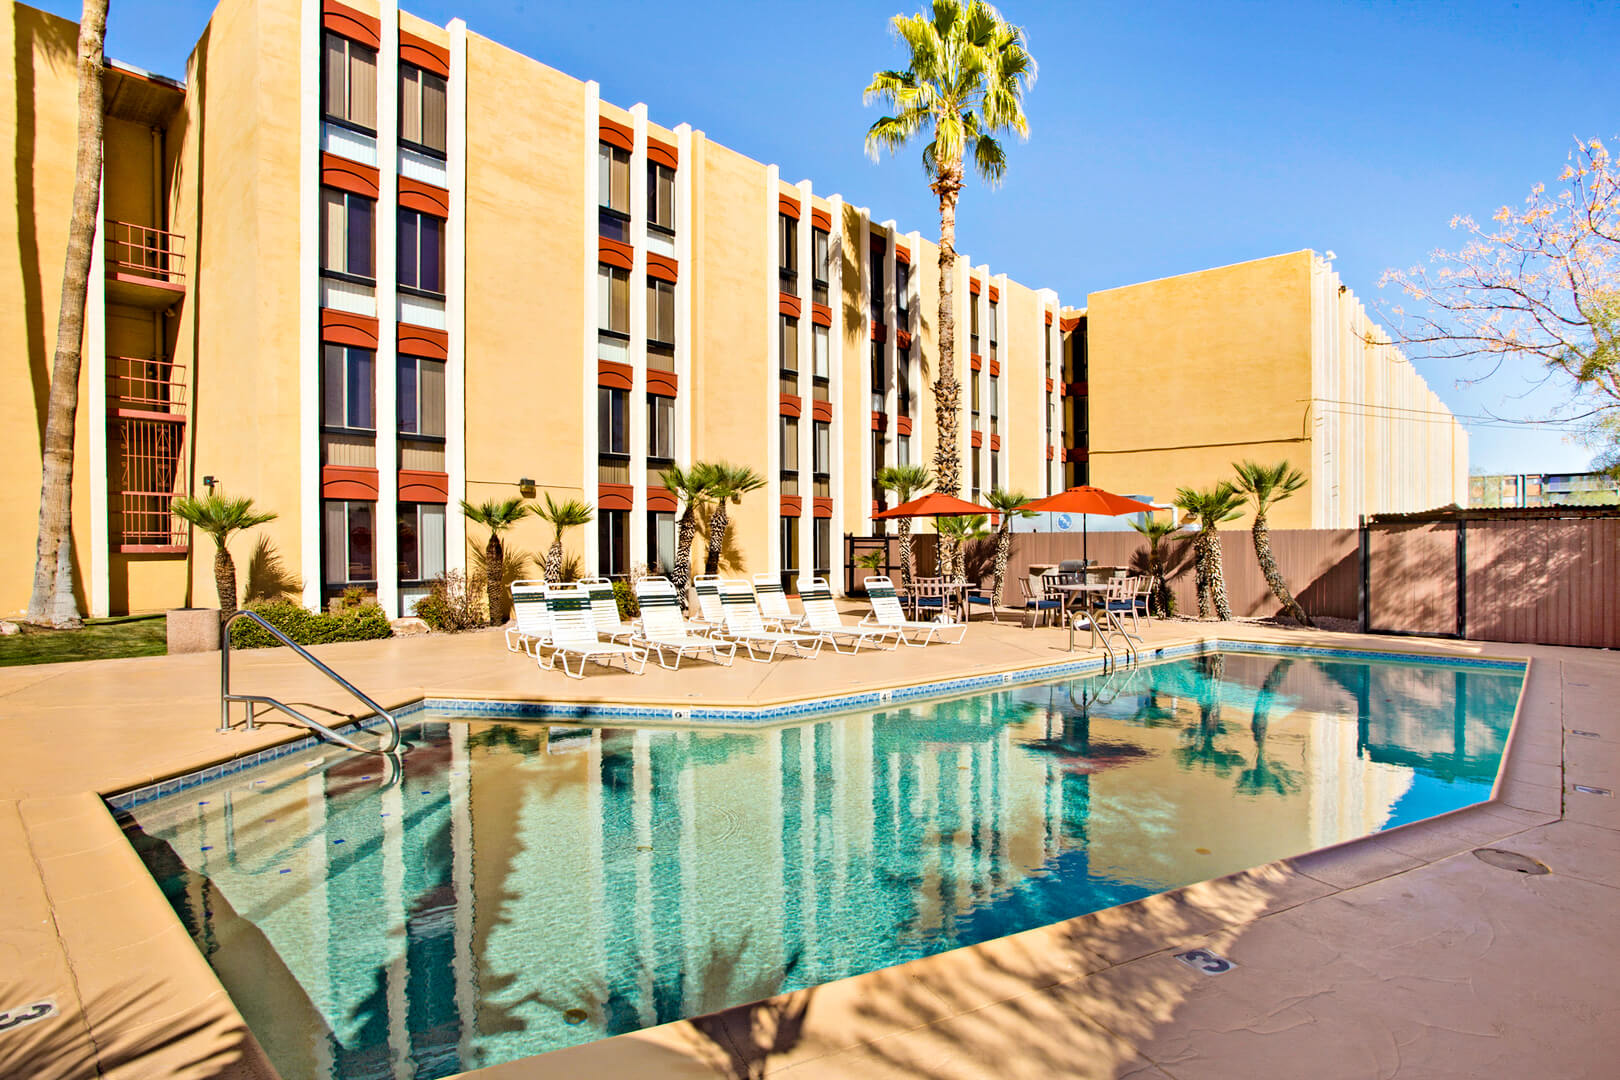 Student-Housing-Apartments-Wildcat-Canyon-02